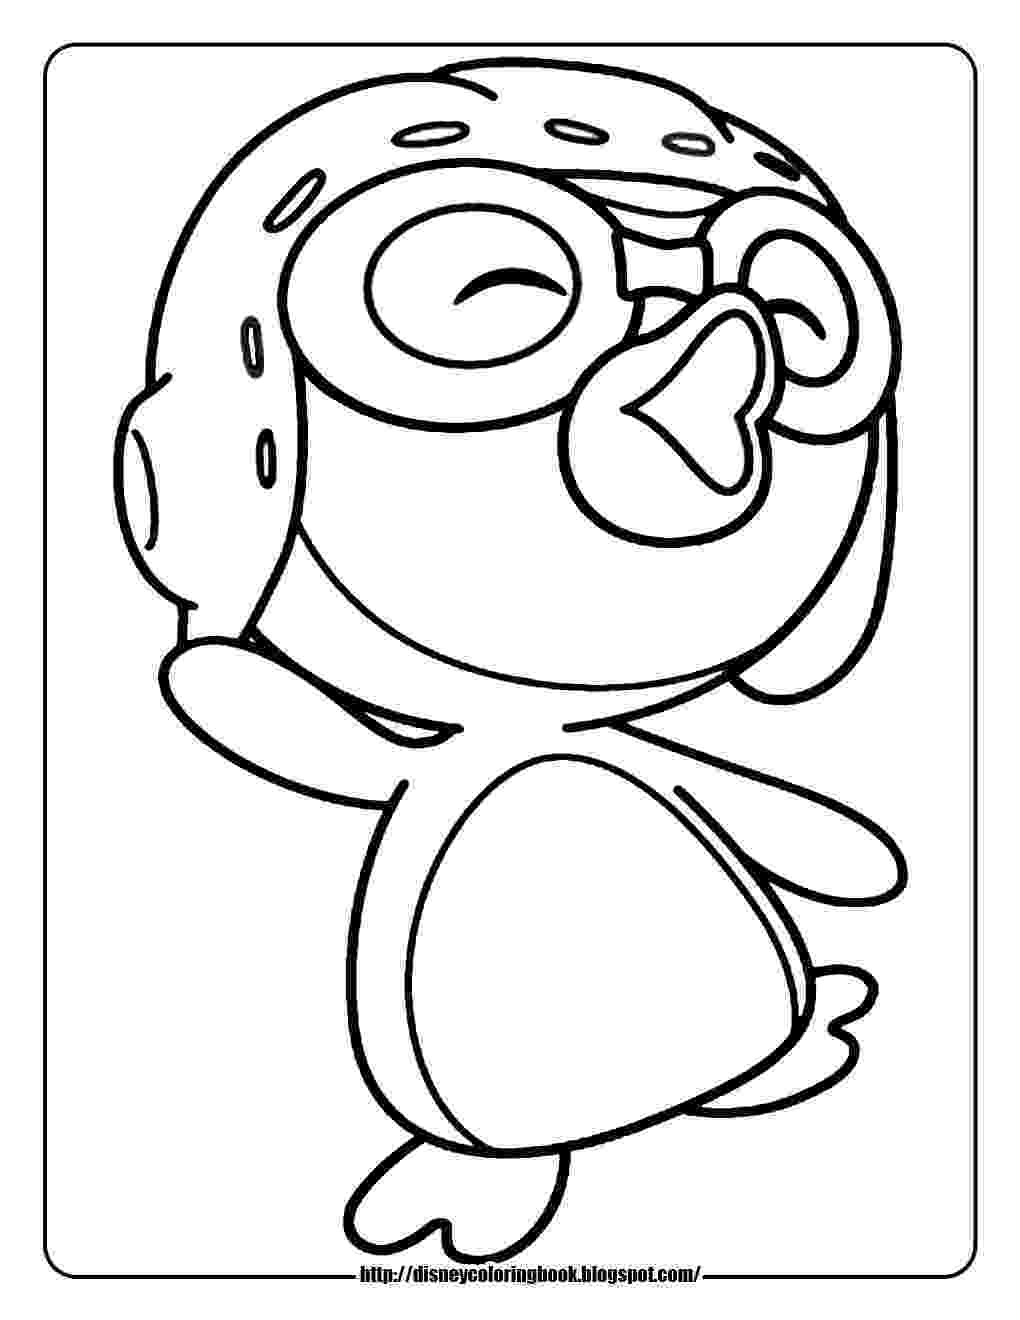 coloring page of penguin free printable penguin coloring pages for kids penguin of coloring page